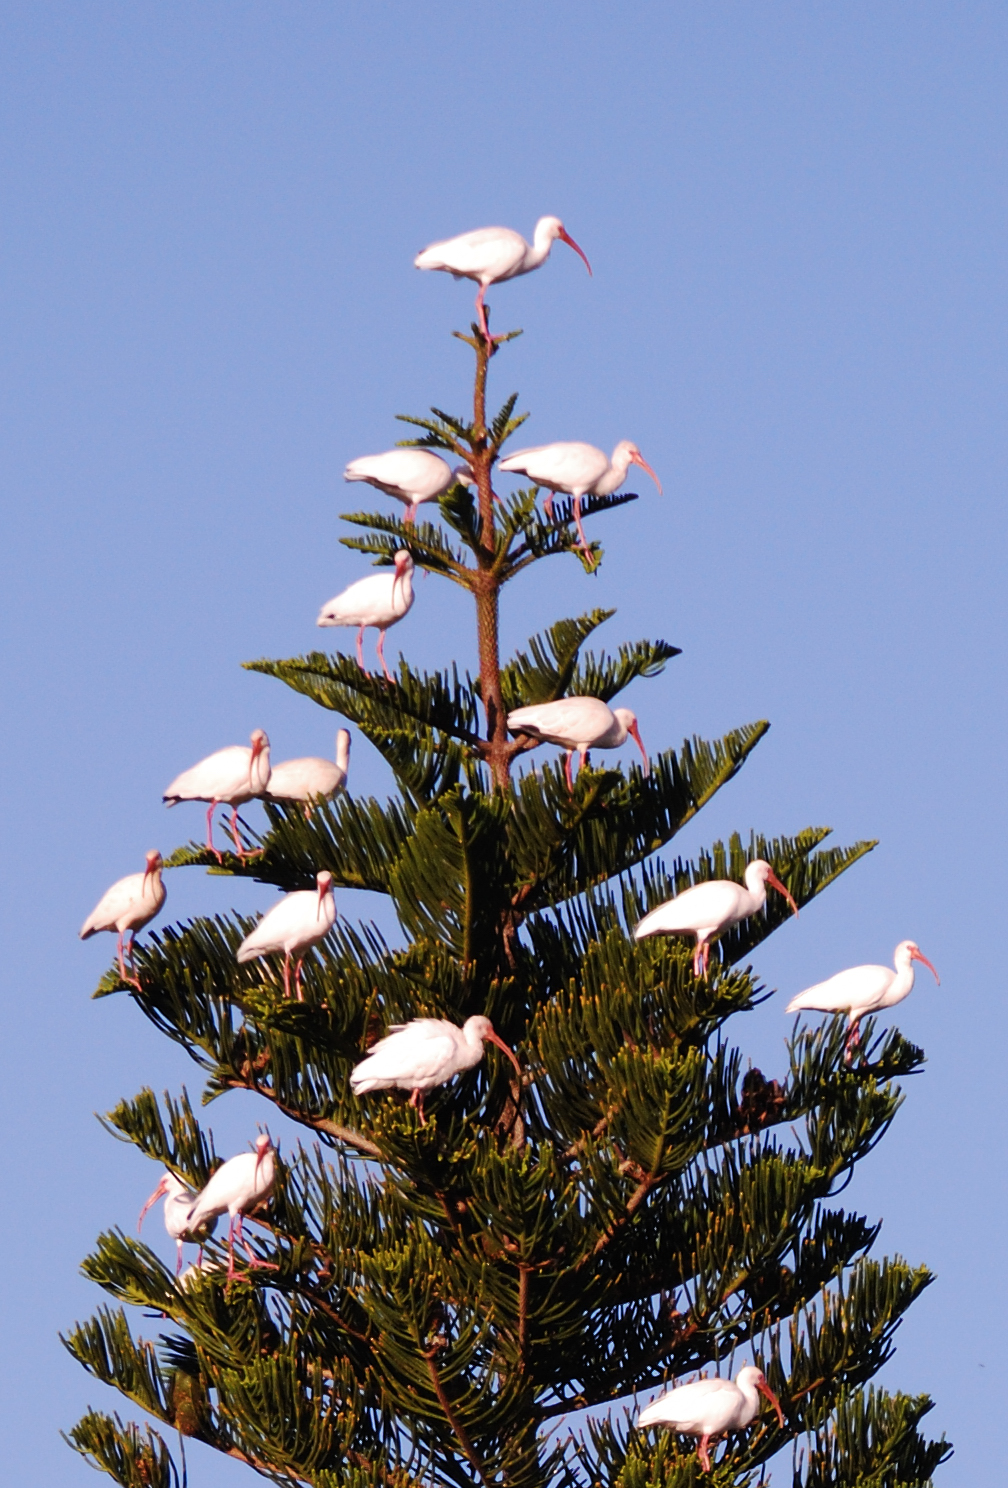 some white ibis look like christmas decorations in the top of a very tall tree